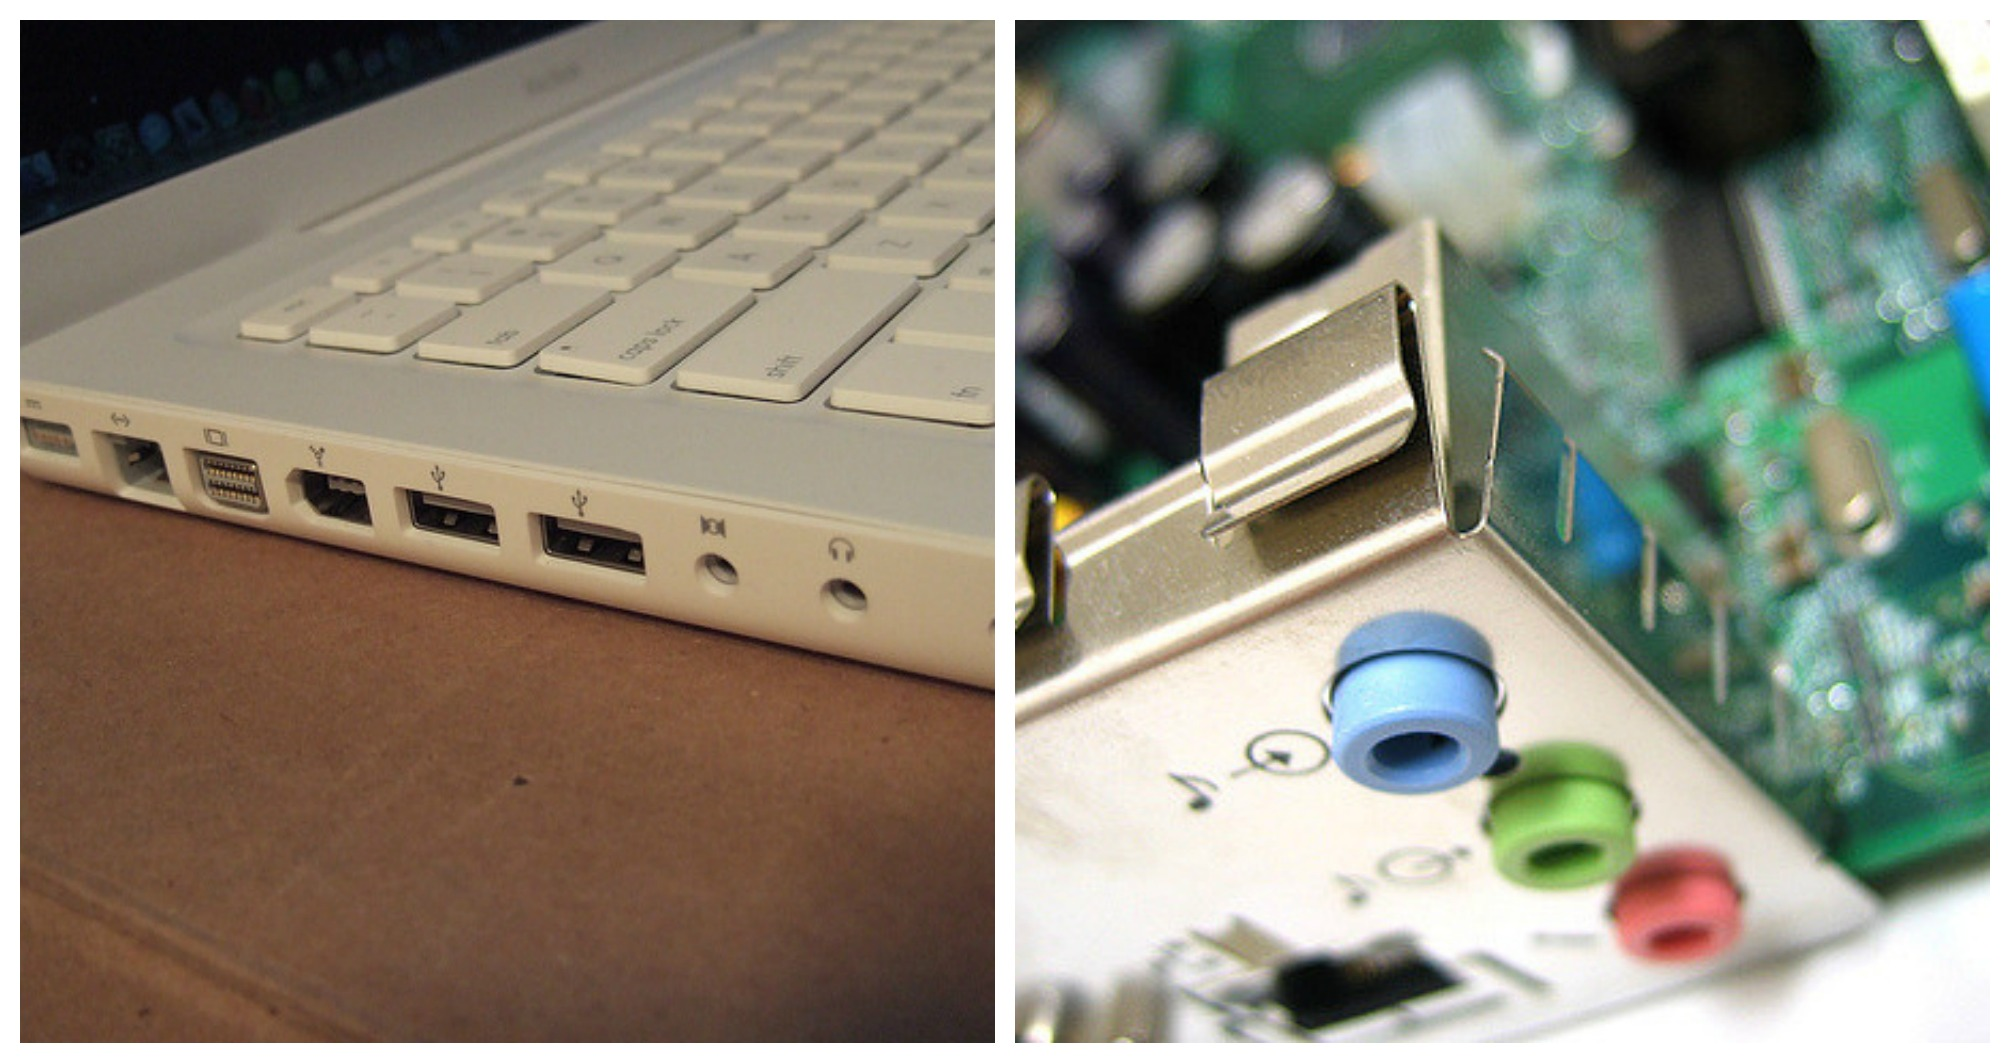 Audio Ports on an Apple Macbook and a disassembled PC